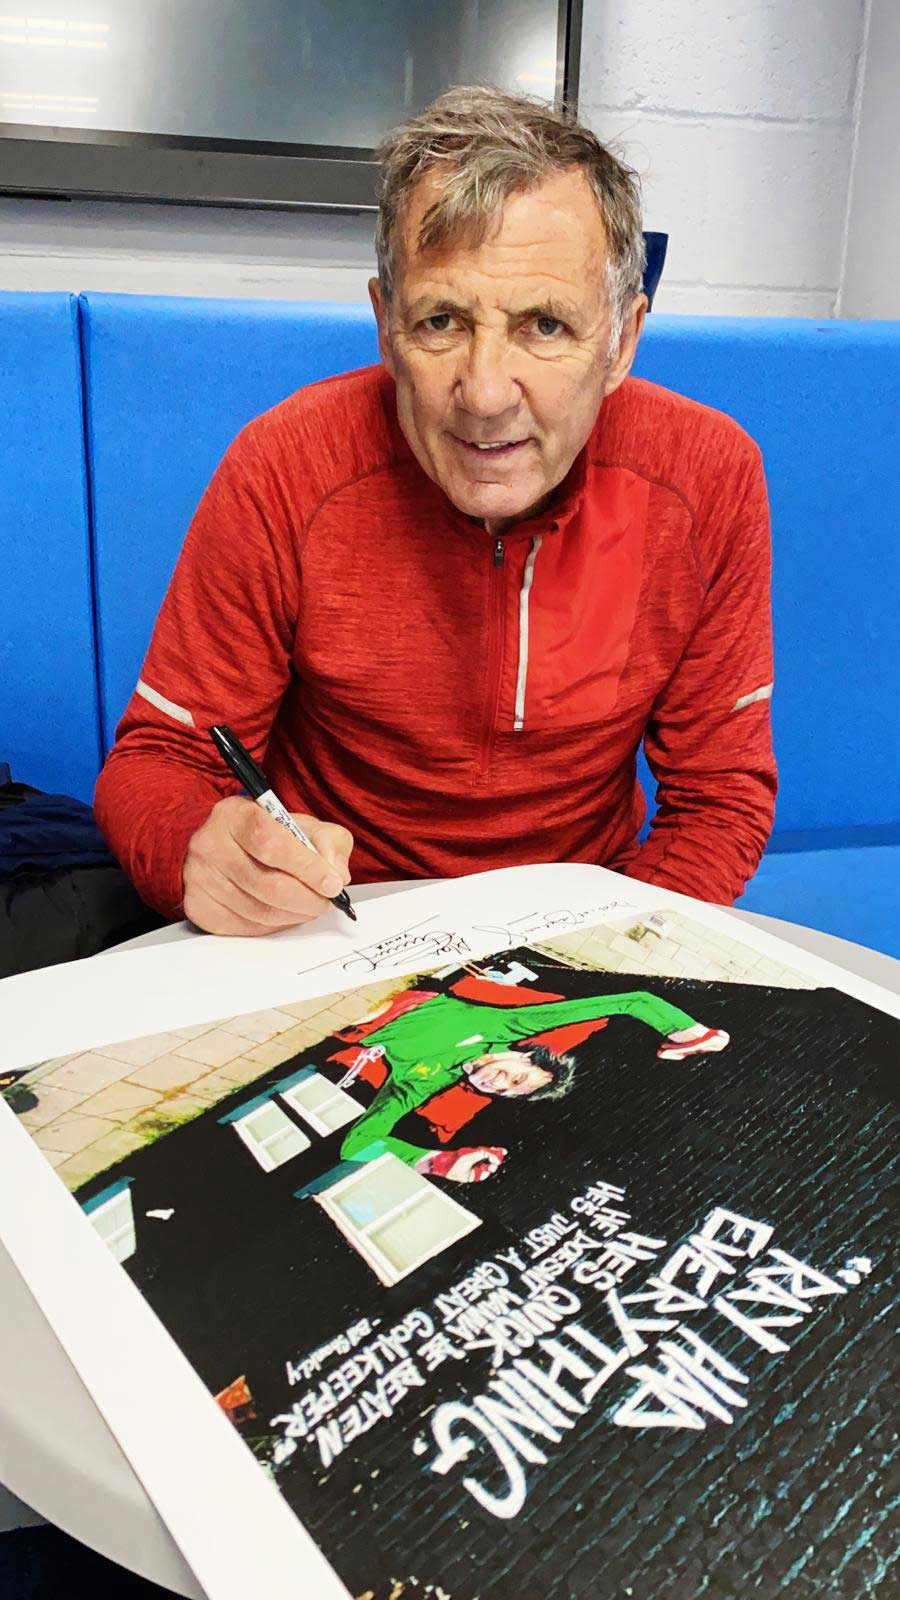 Alan-Kennedy-signs-Ray-Clemence-Limited-Edition-Print